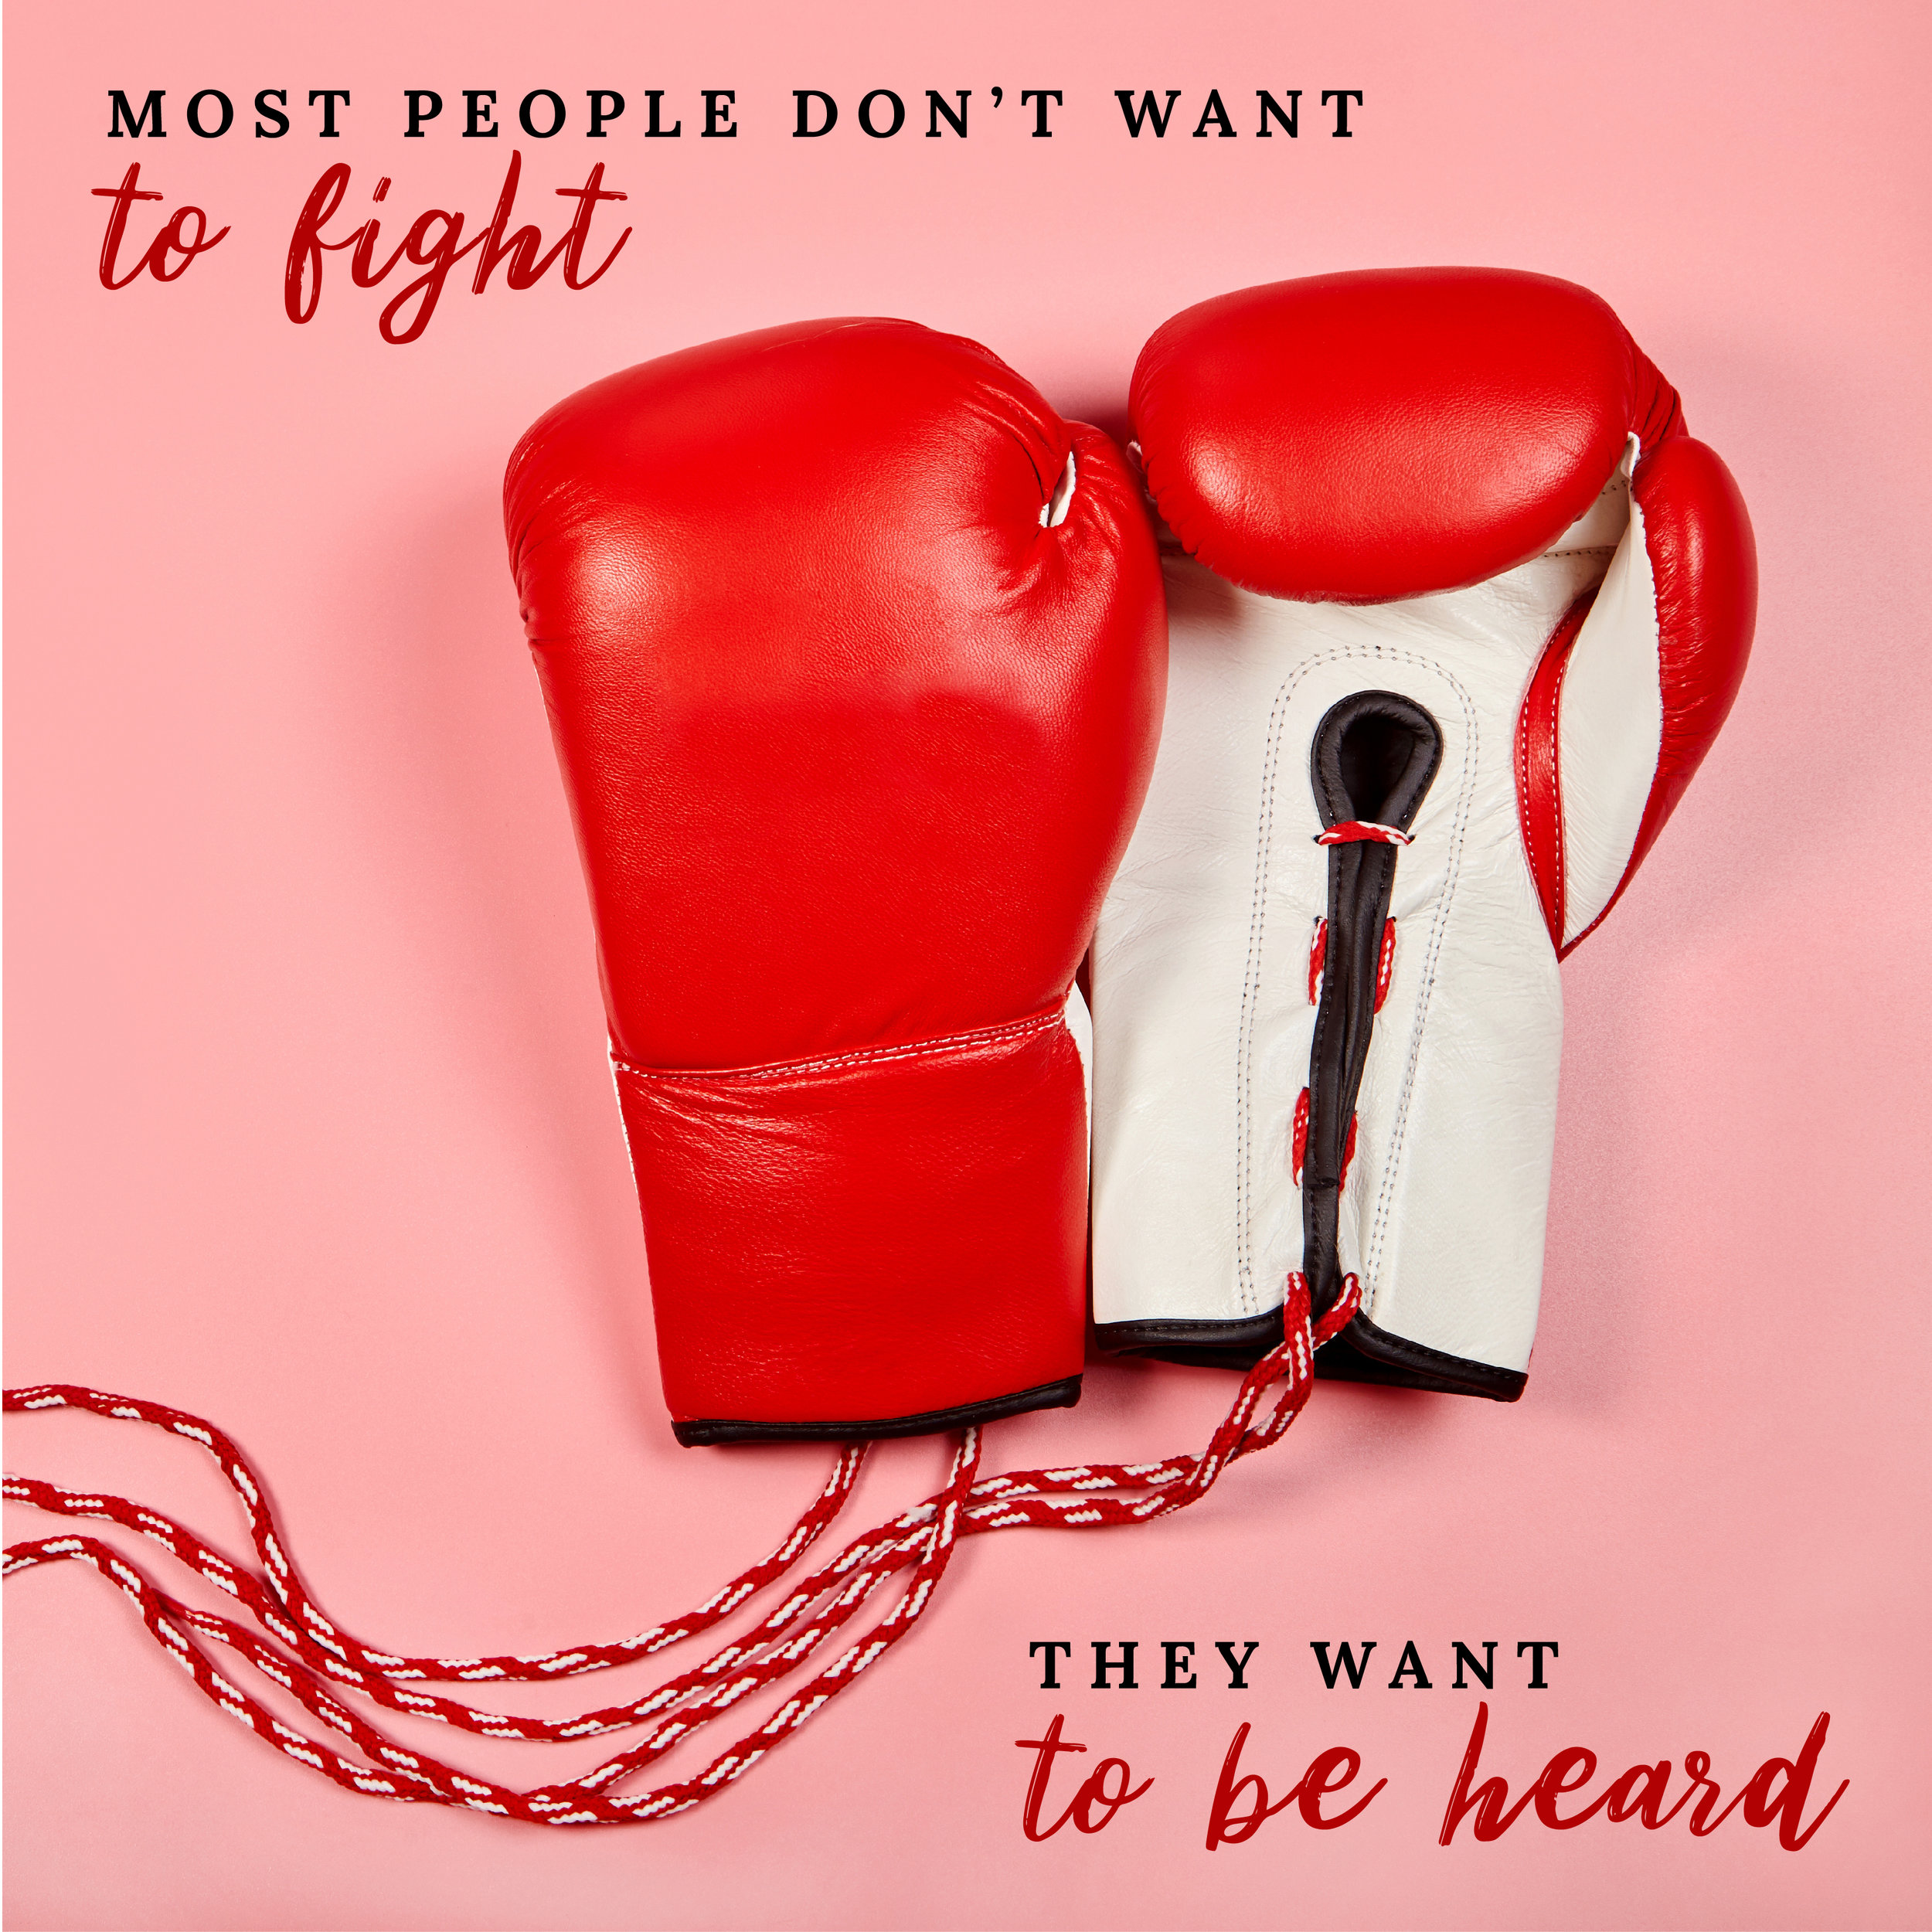 Ways to fight fair when tempers flare. -